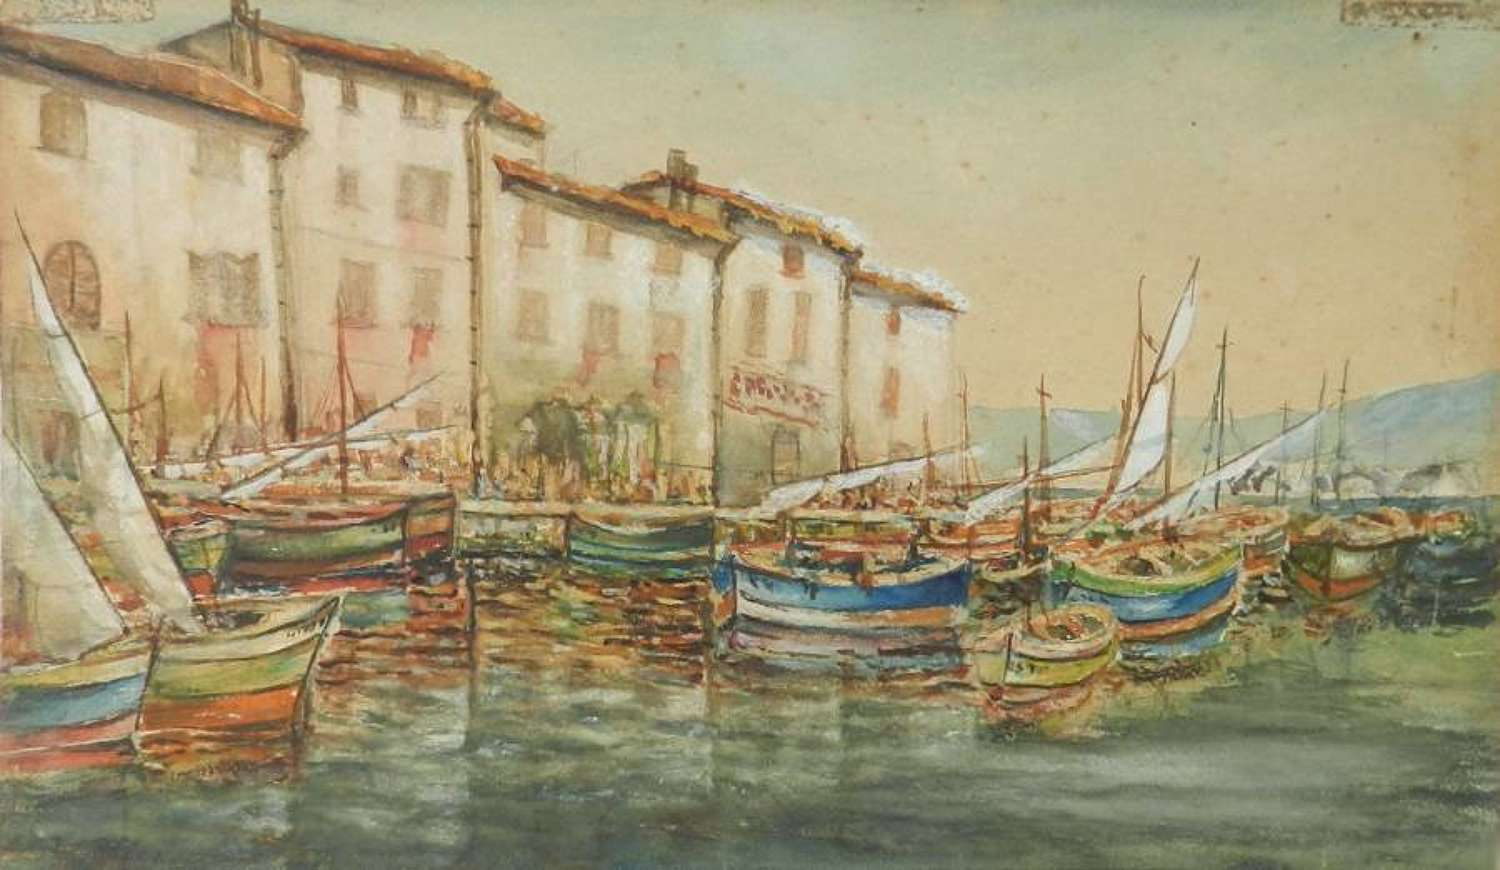 Original Painting Signed Watercolour Study of St Tropez Fishing Boats in Harbour Port Alfred de La Rocca 1855-1915 French